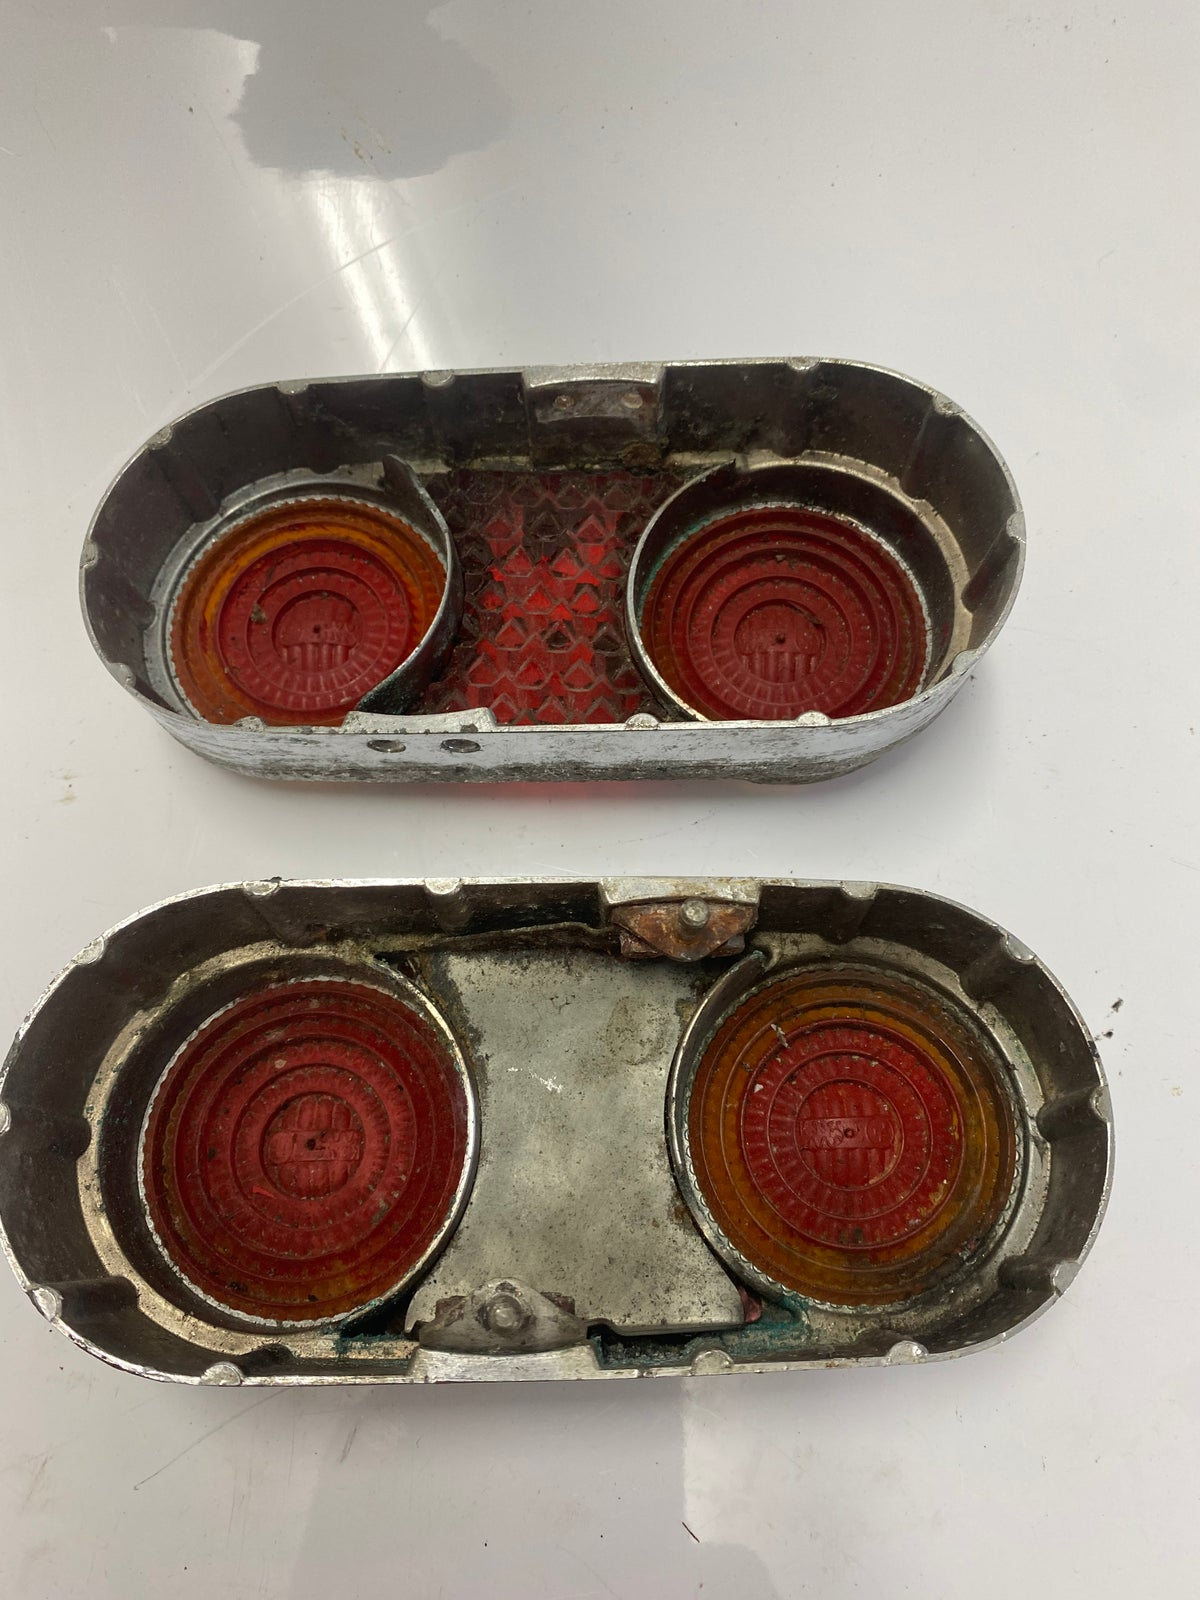 BMW 507 Tail Light covers